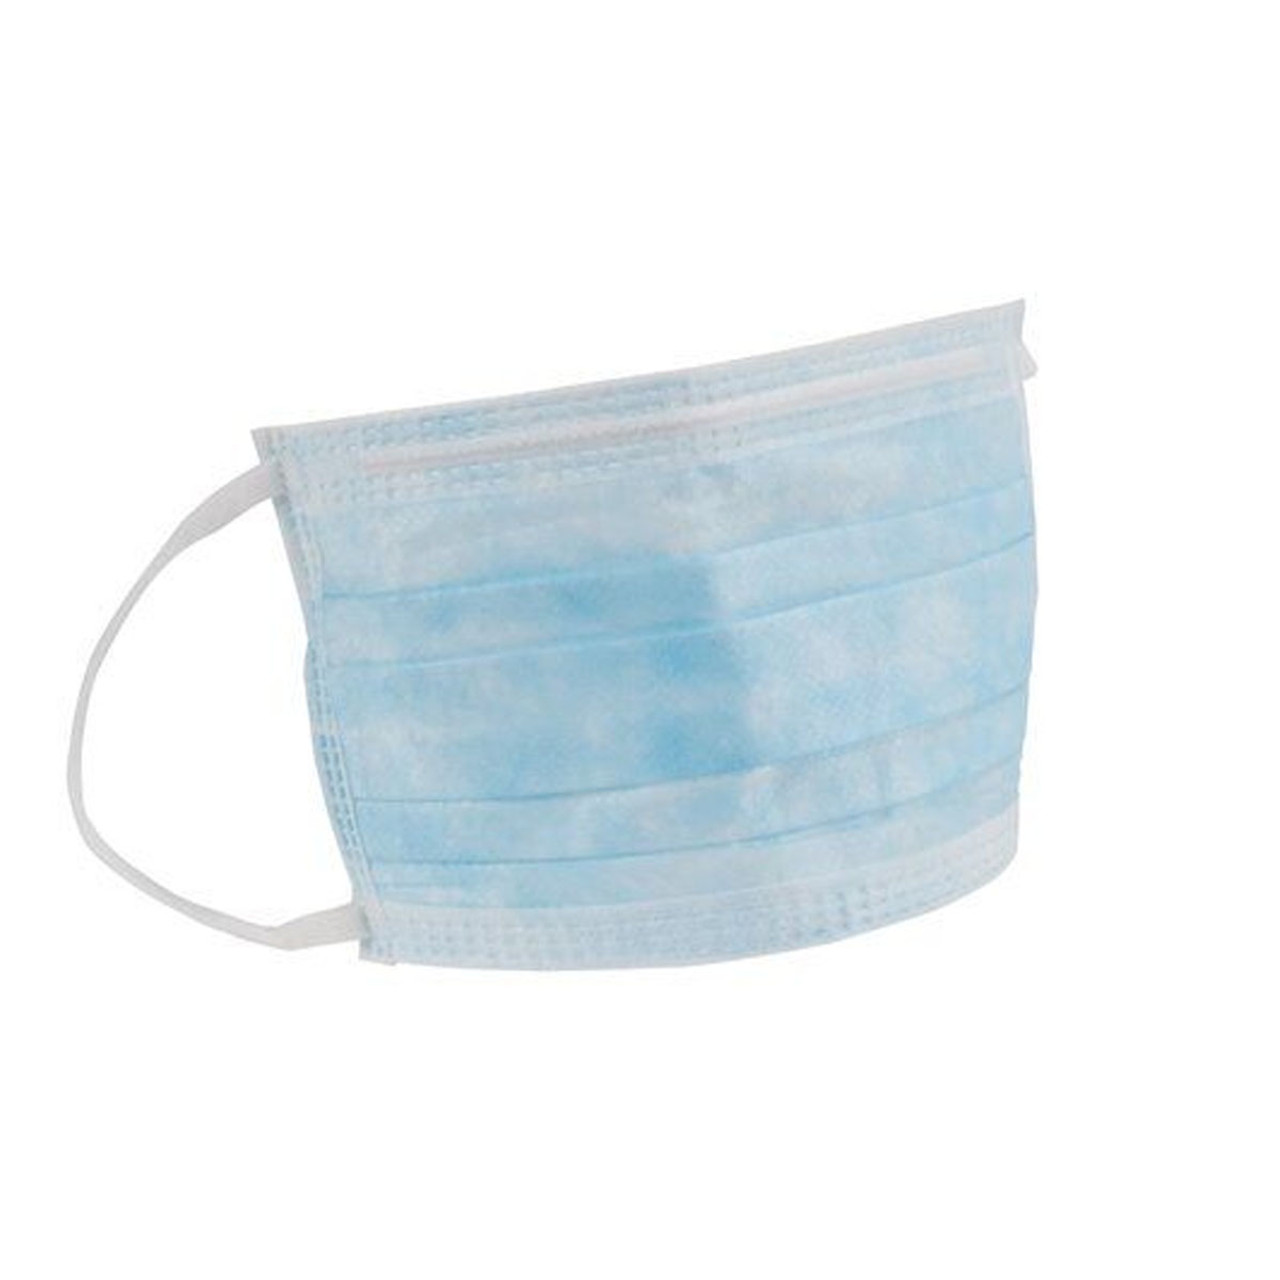 3-Ply Disposable Procedure Earloop Face Mask -  50 Masks/Box